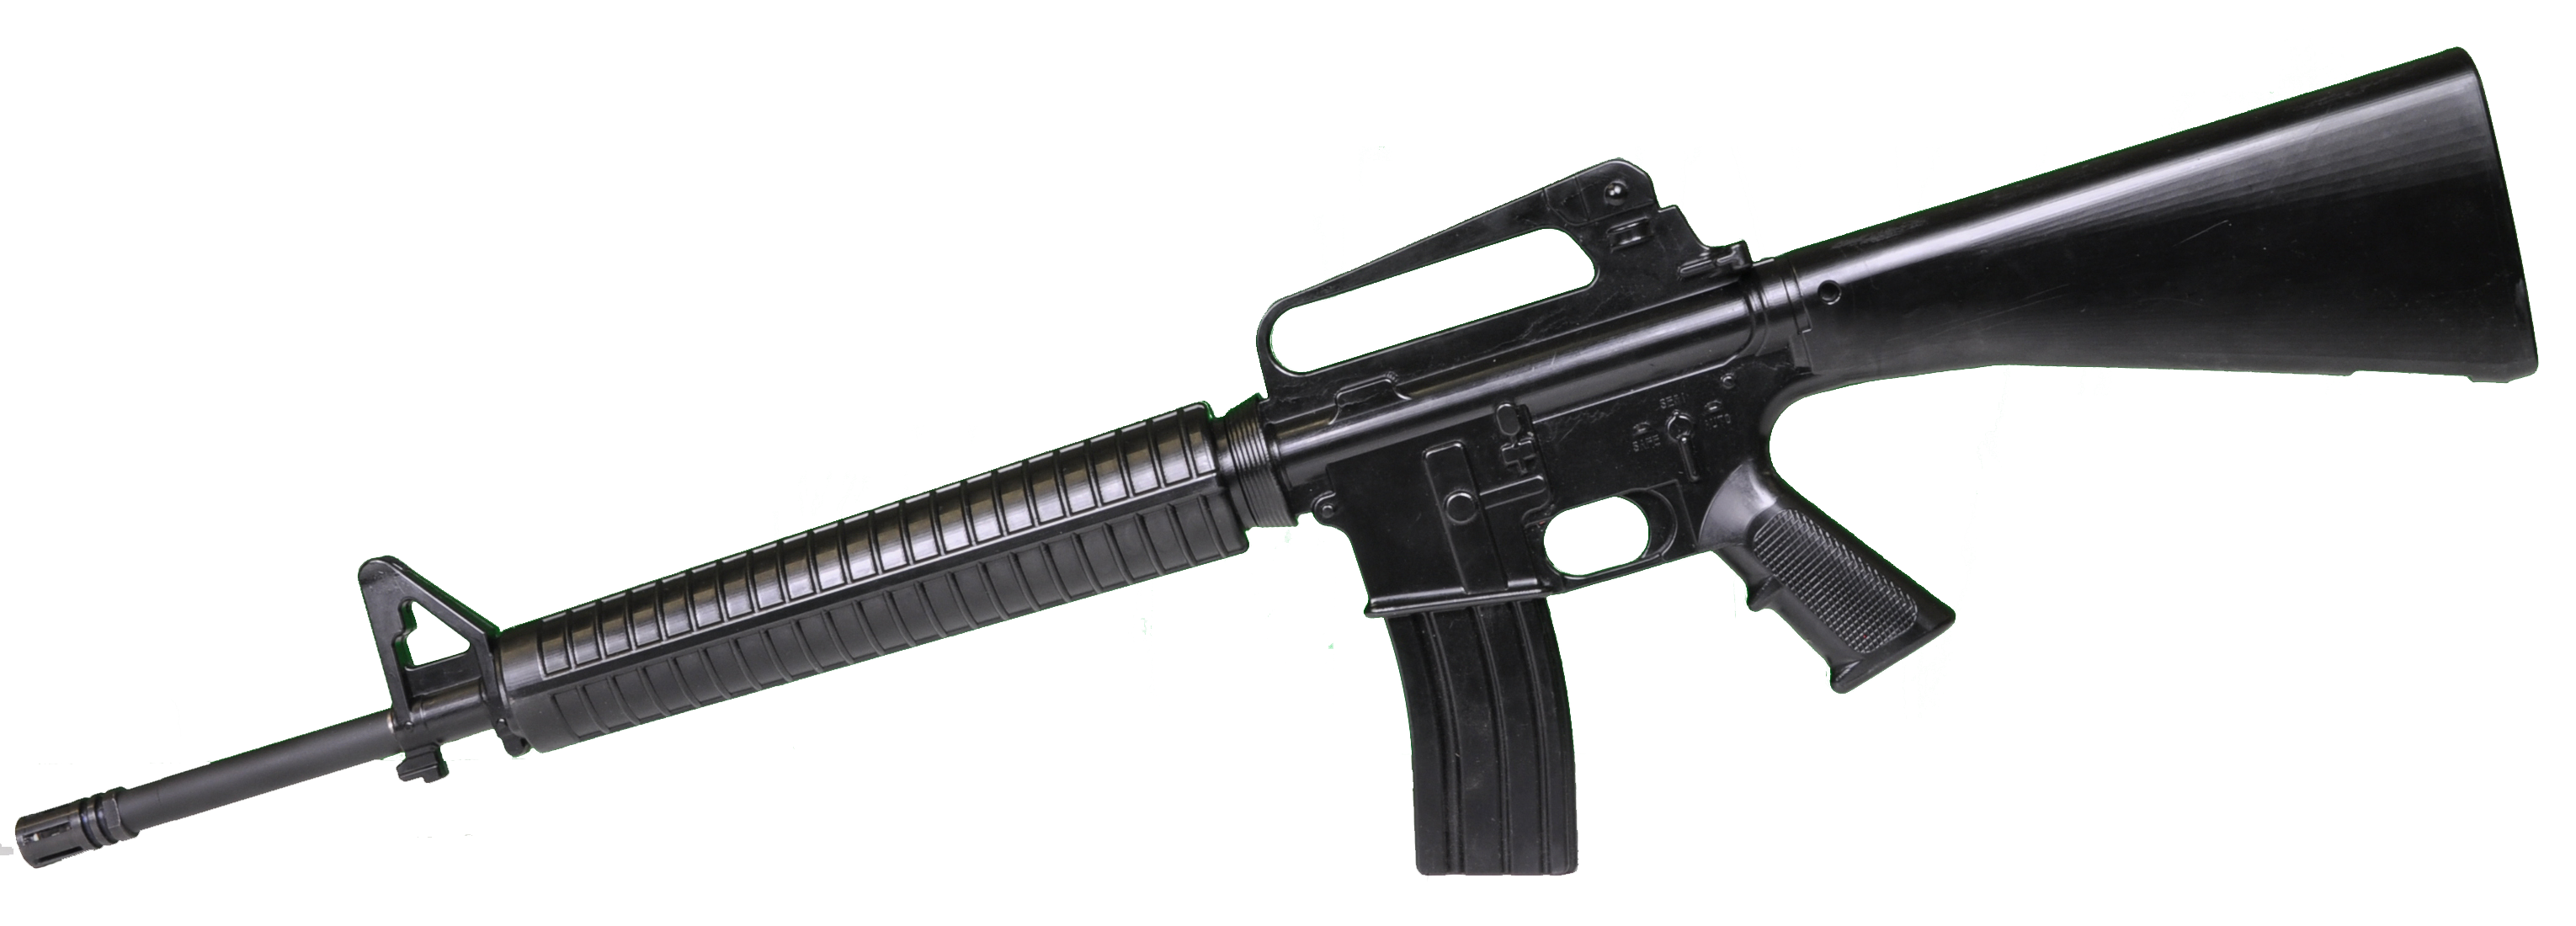 clipart library library Guns clipart gan. Assault rifle png images